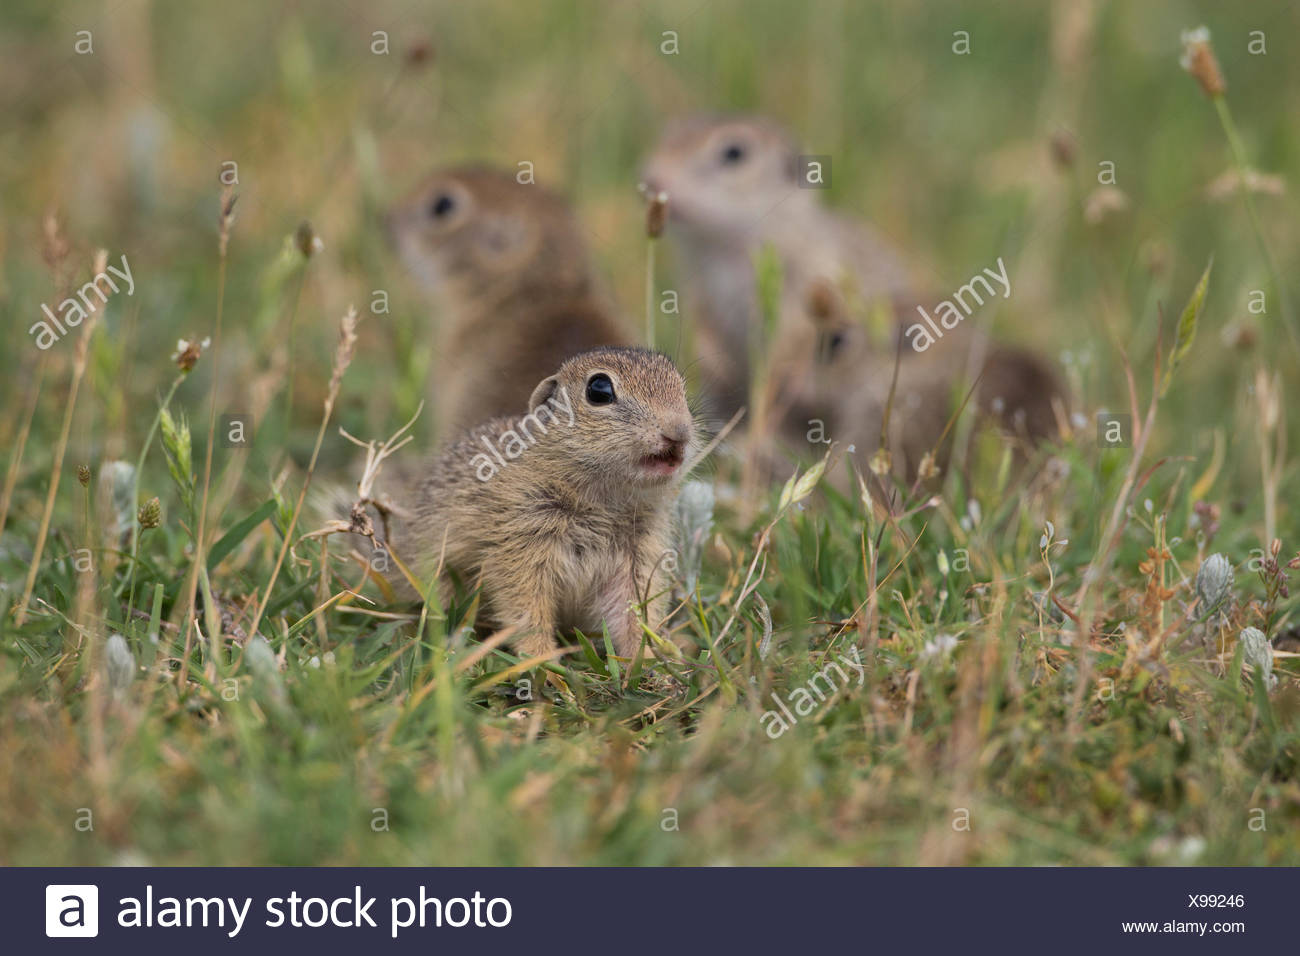 European souslik, Bulgary/ (Spermophilus citellus) Stock Photo